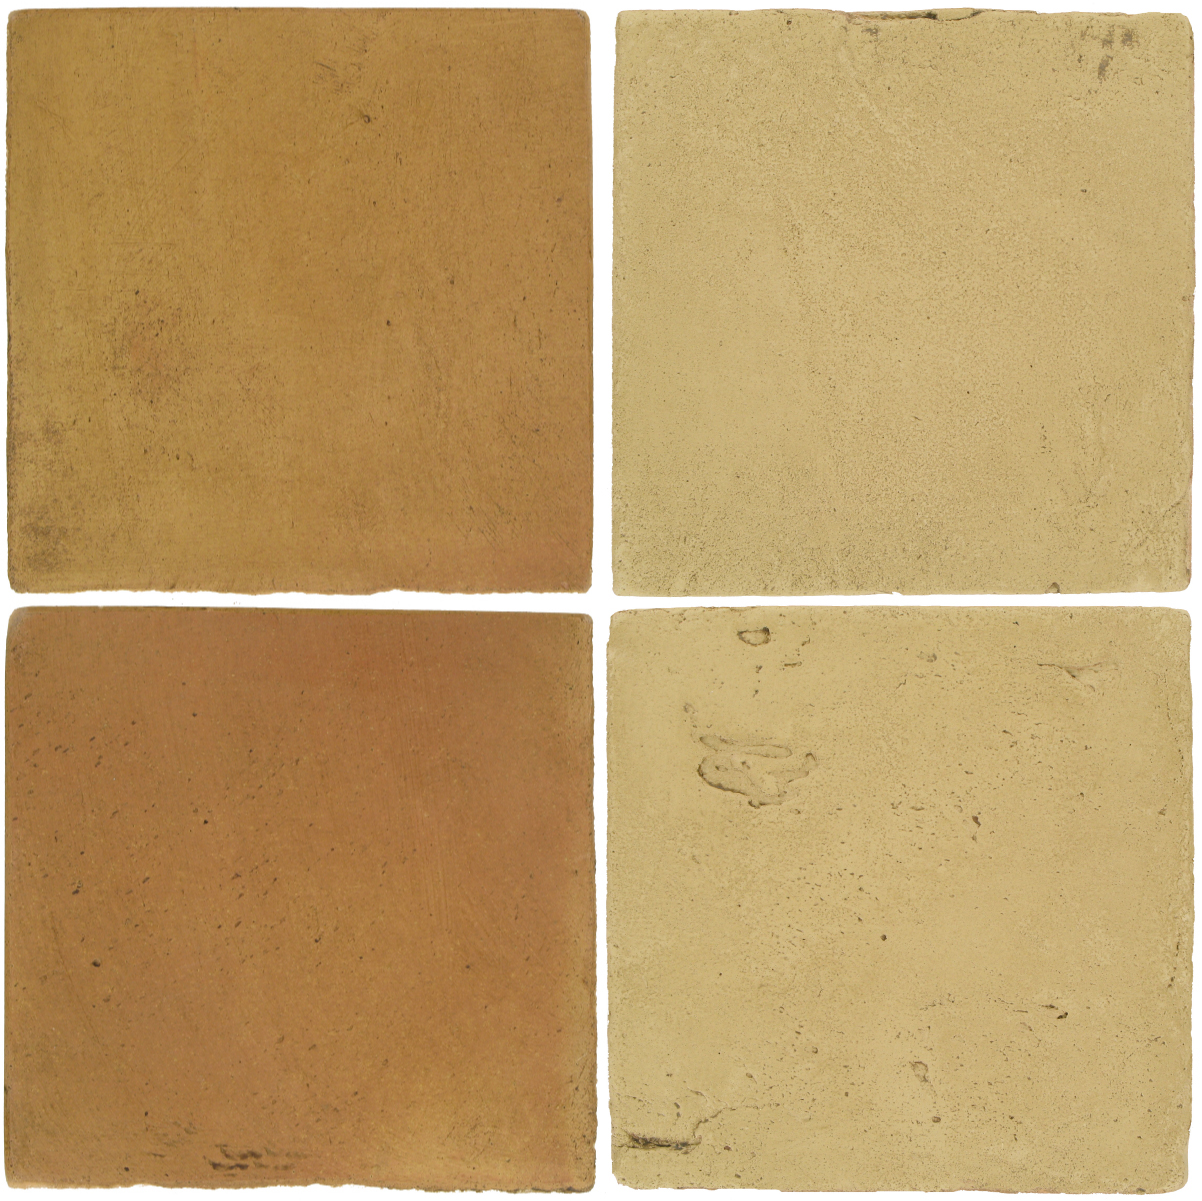 Pedralbes Antique Terracotta  2 Color Combinations  OHS-PSSW Siena Wheat + VTG-PGGW GoldenW.